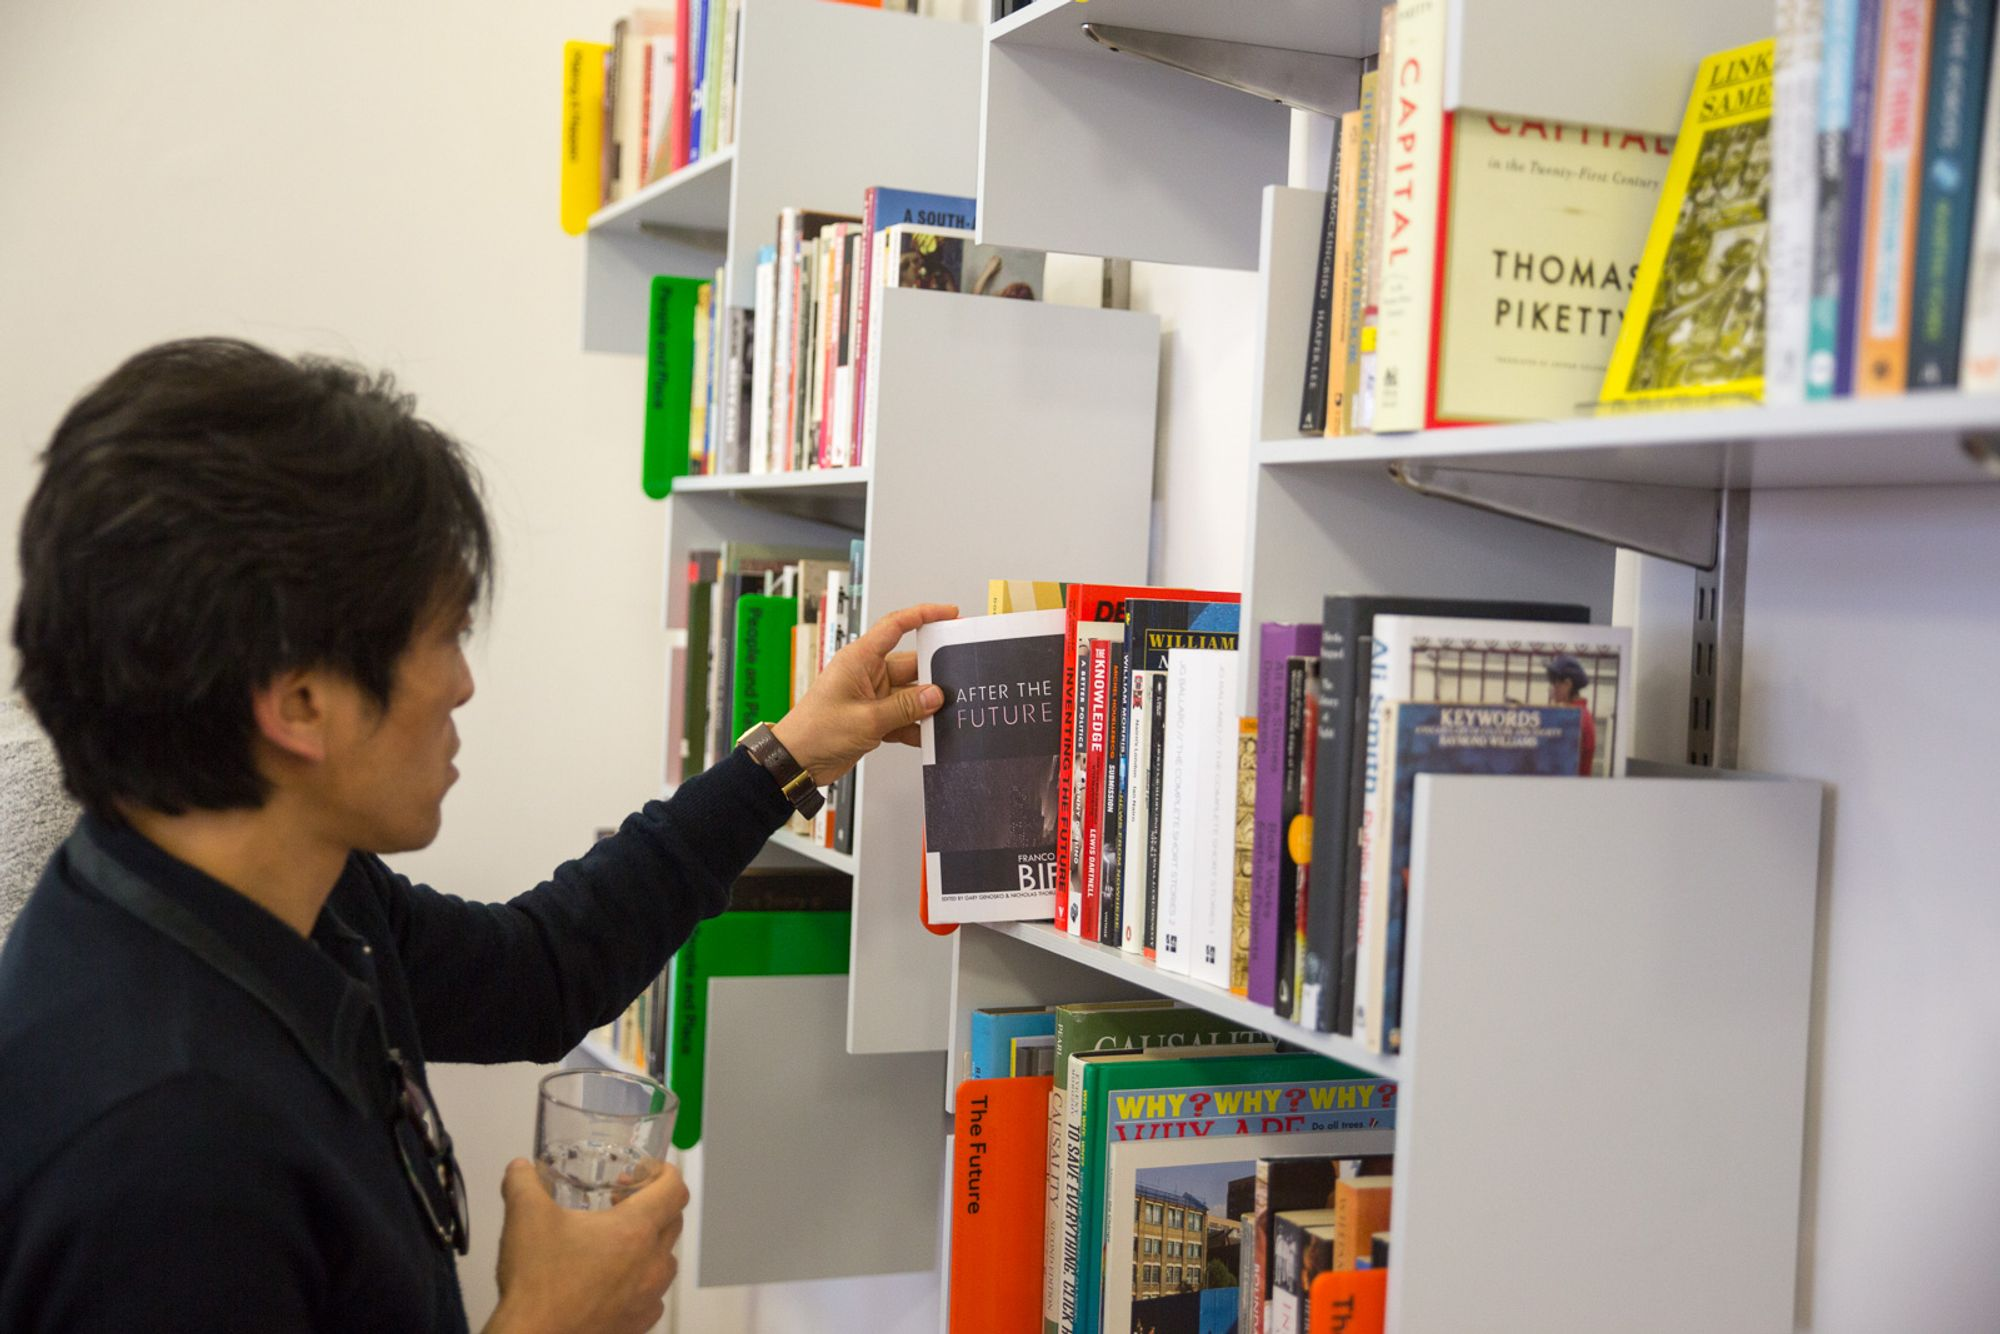 On the right, grey wallmounted shelves full of books. On the left, a man with dark hair and shirt, holding a glass and browsing the books